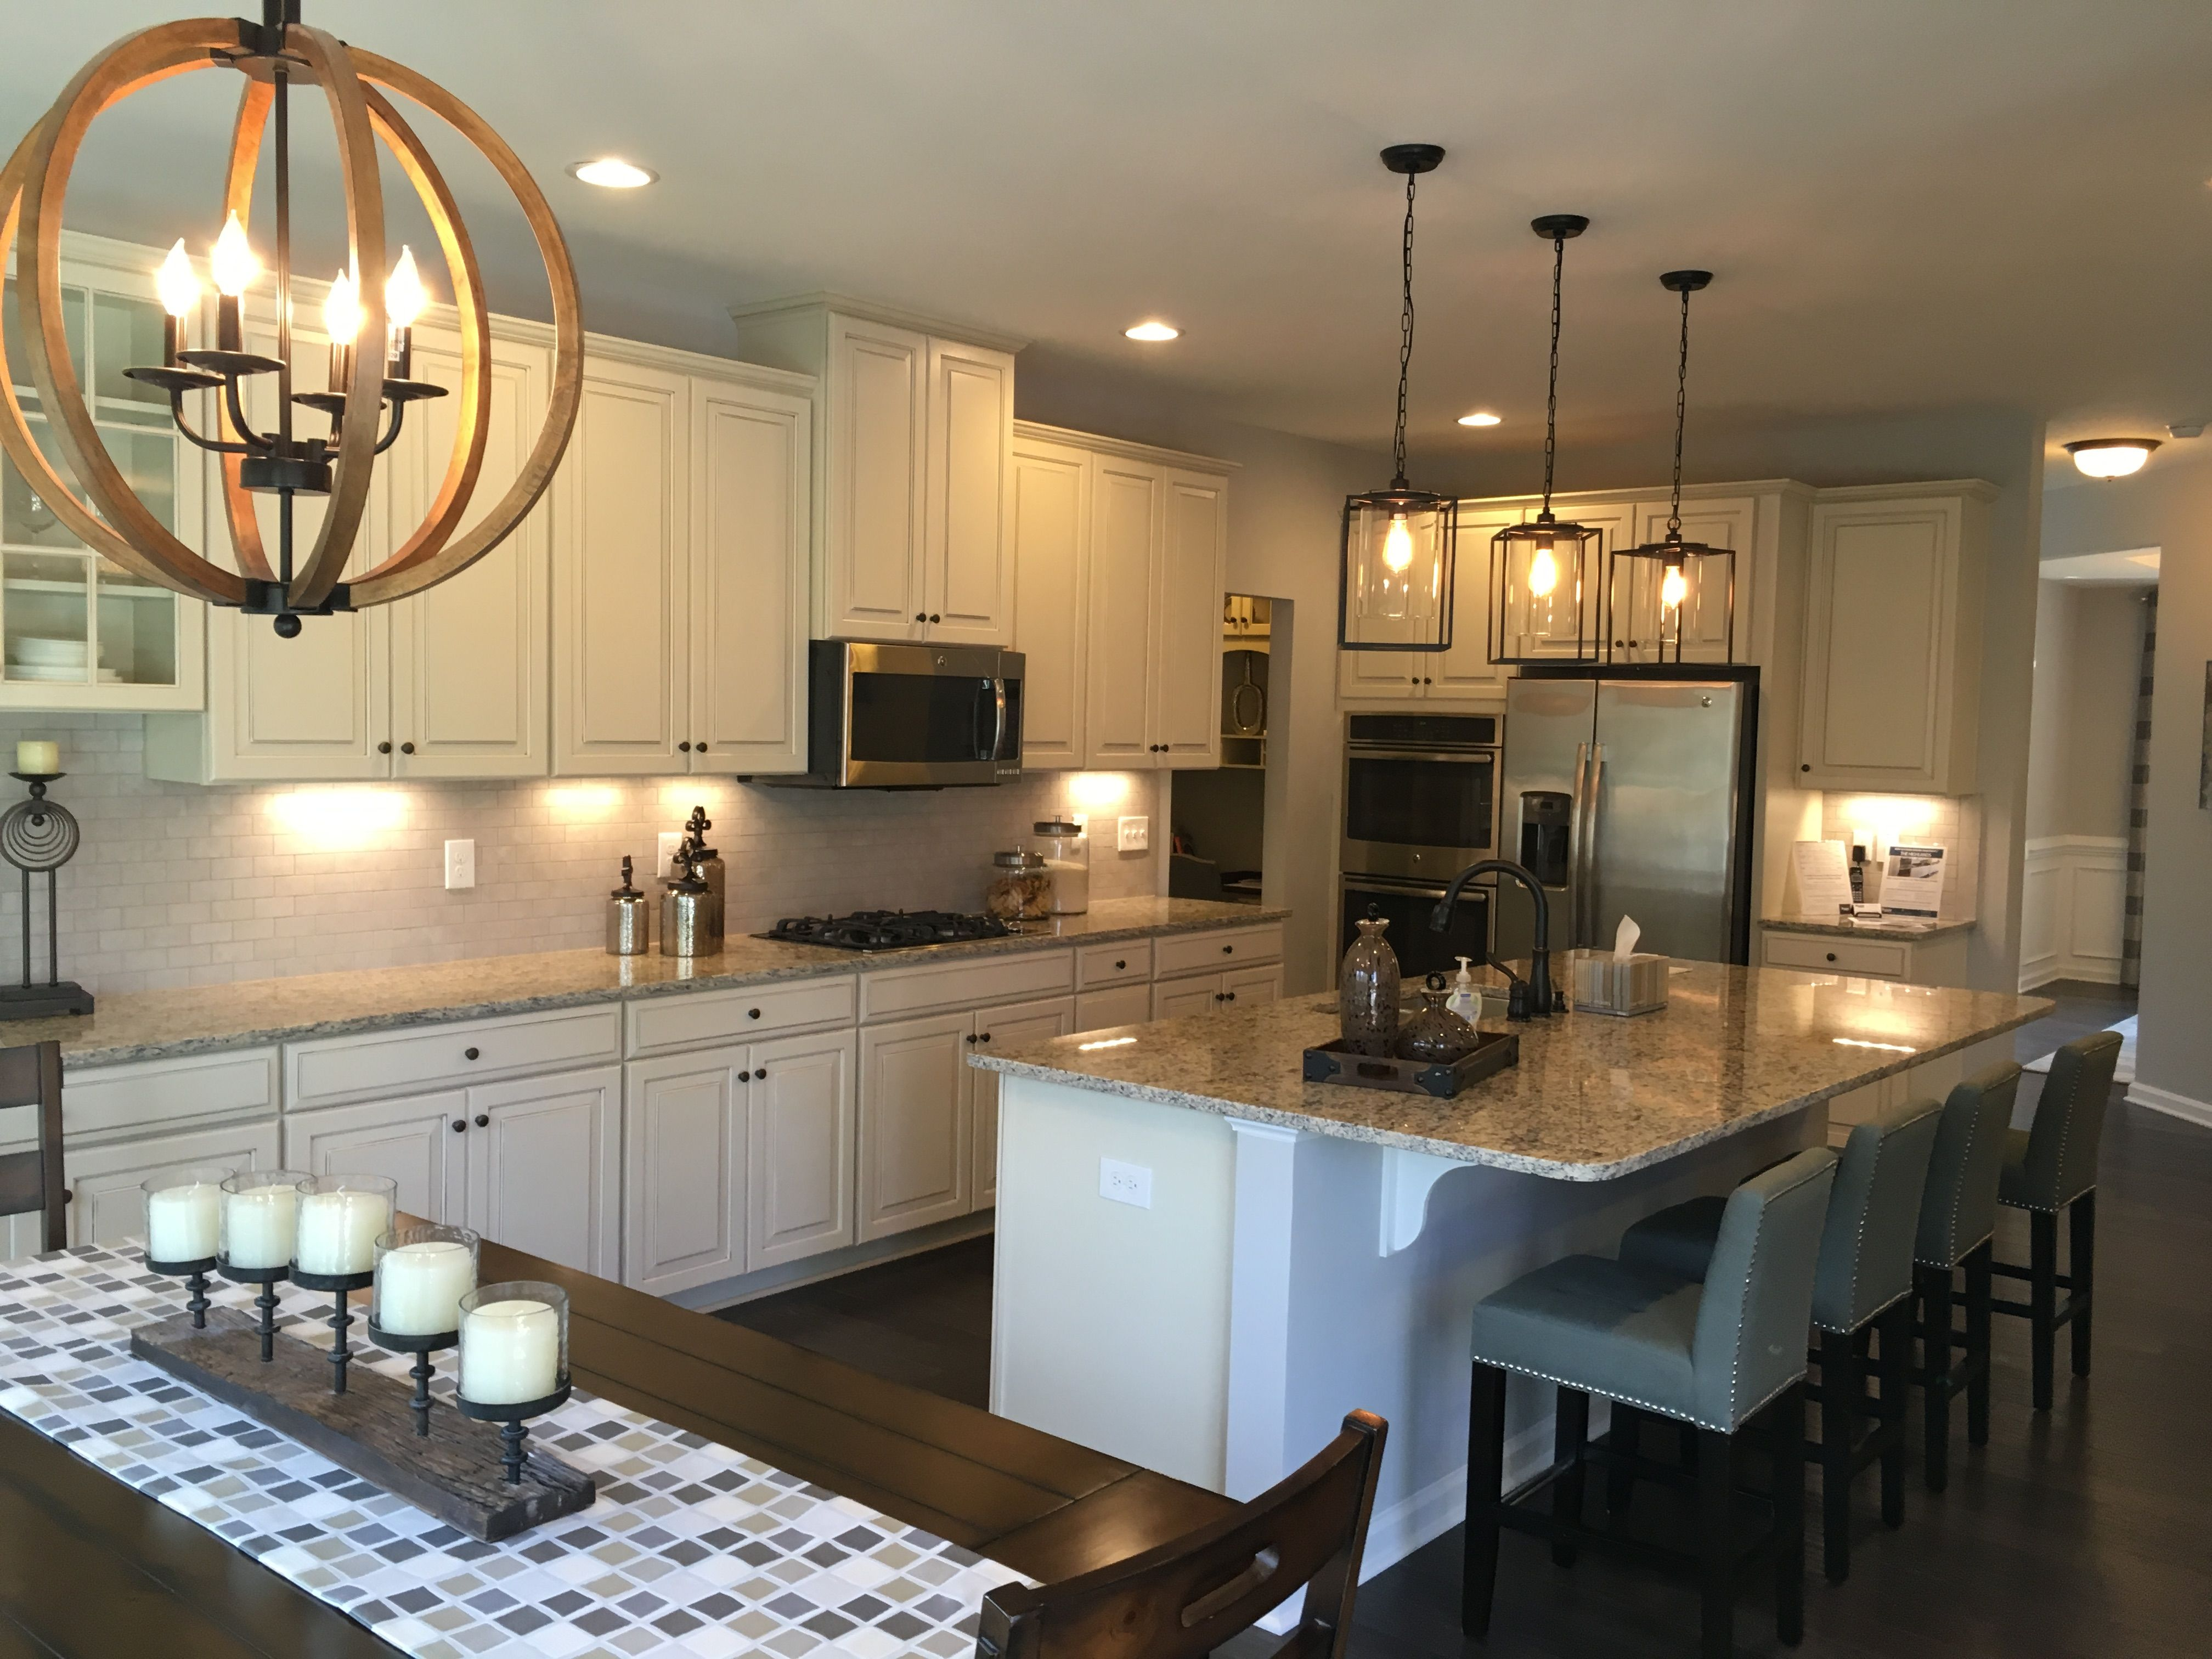 new kitchen layout - jefferson square model - ryan homes | dream